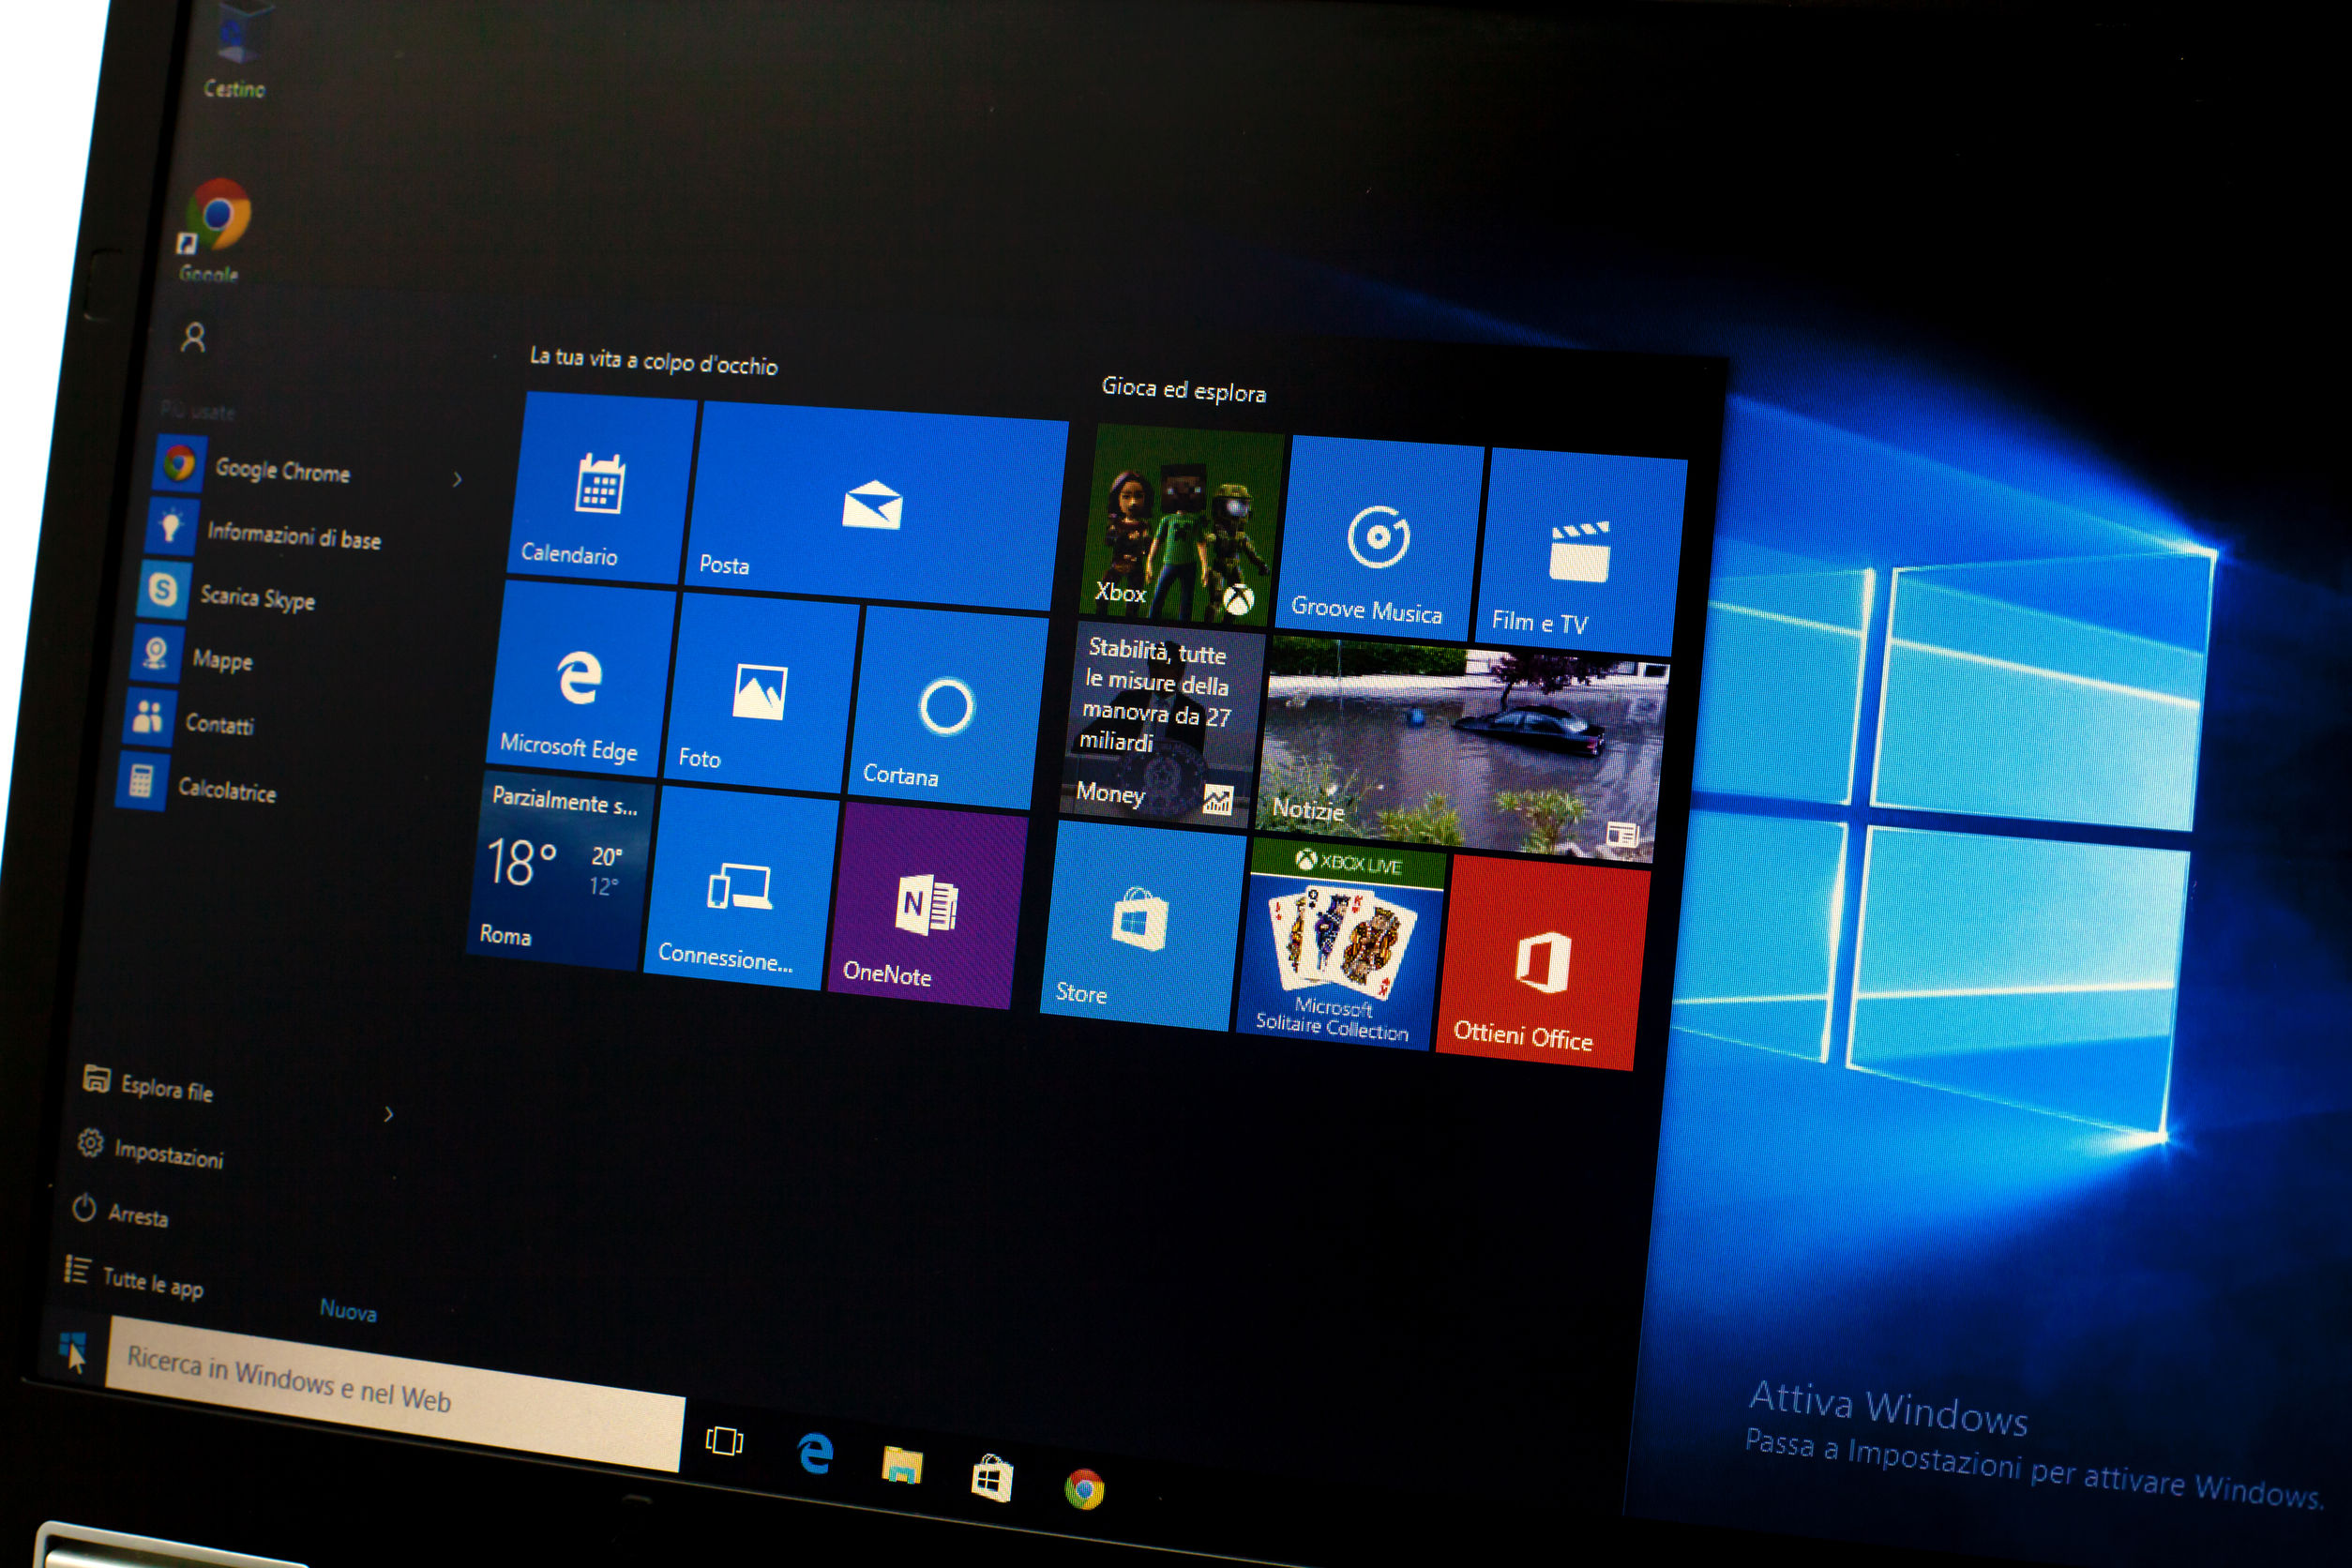 Gadget Calendario Windows 10.Microsoft Welcomes October With A Windows 10 Update The